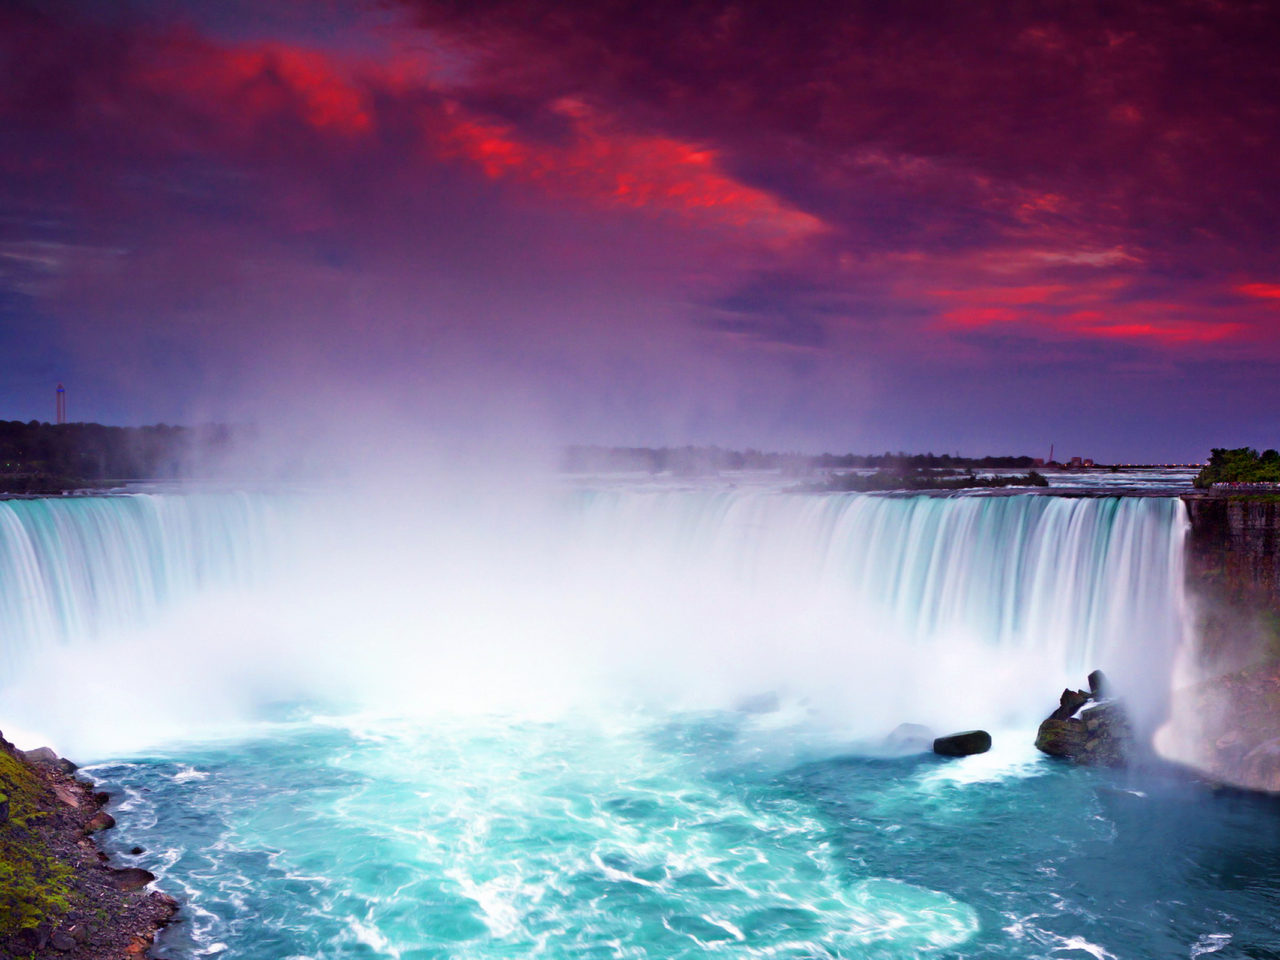 Niagara Falls Waterfall Wallpaper Niagara Falls At Night Lights Hd Wallpaper For Desktop